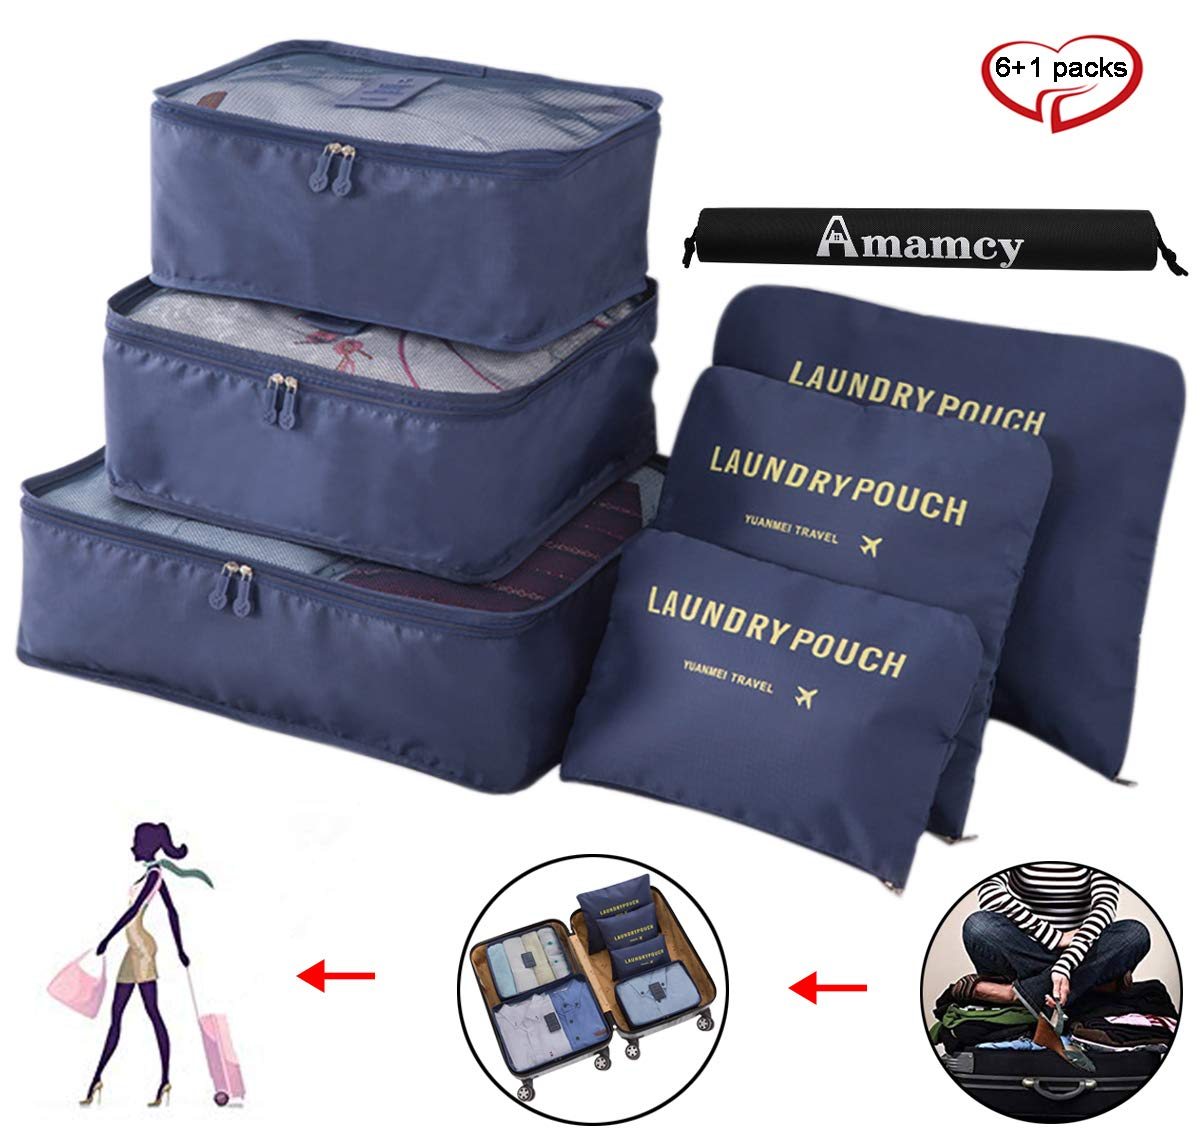 Amamcy 7 Sets Packing Cube Travel Storage Luggage Organizer Bags Clothes Toiletries Mesh Pouch Accessories